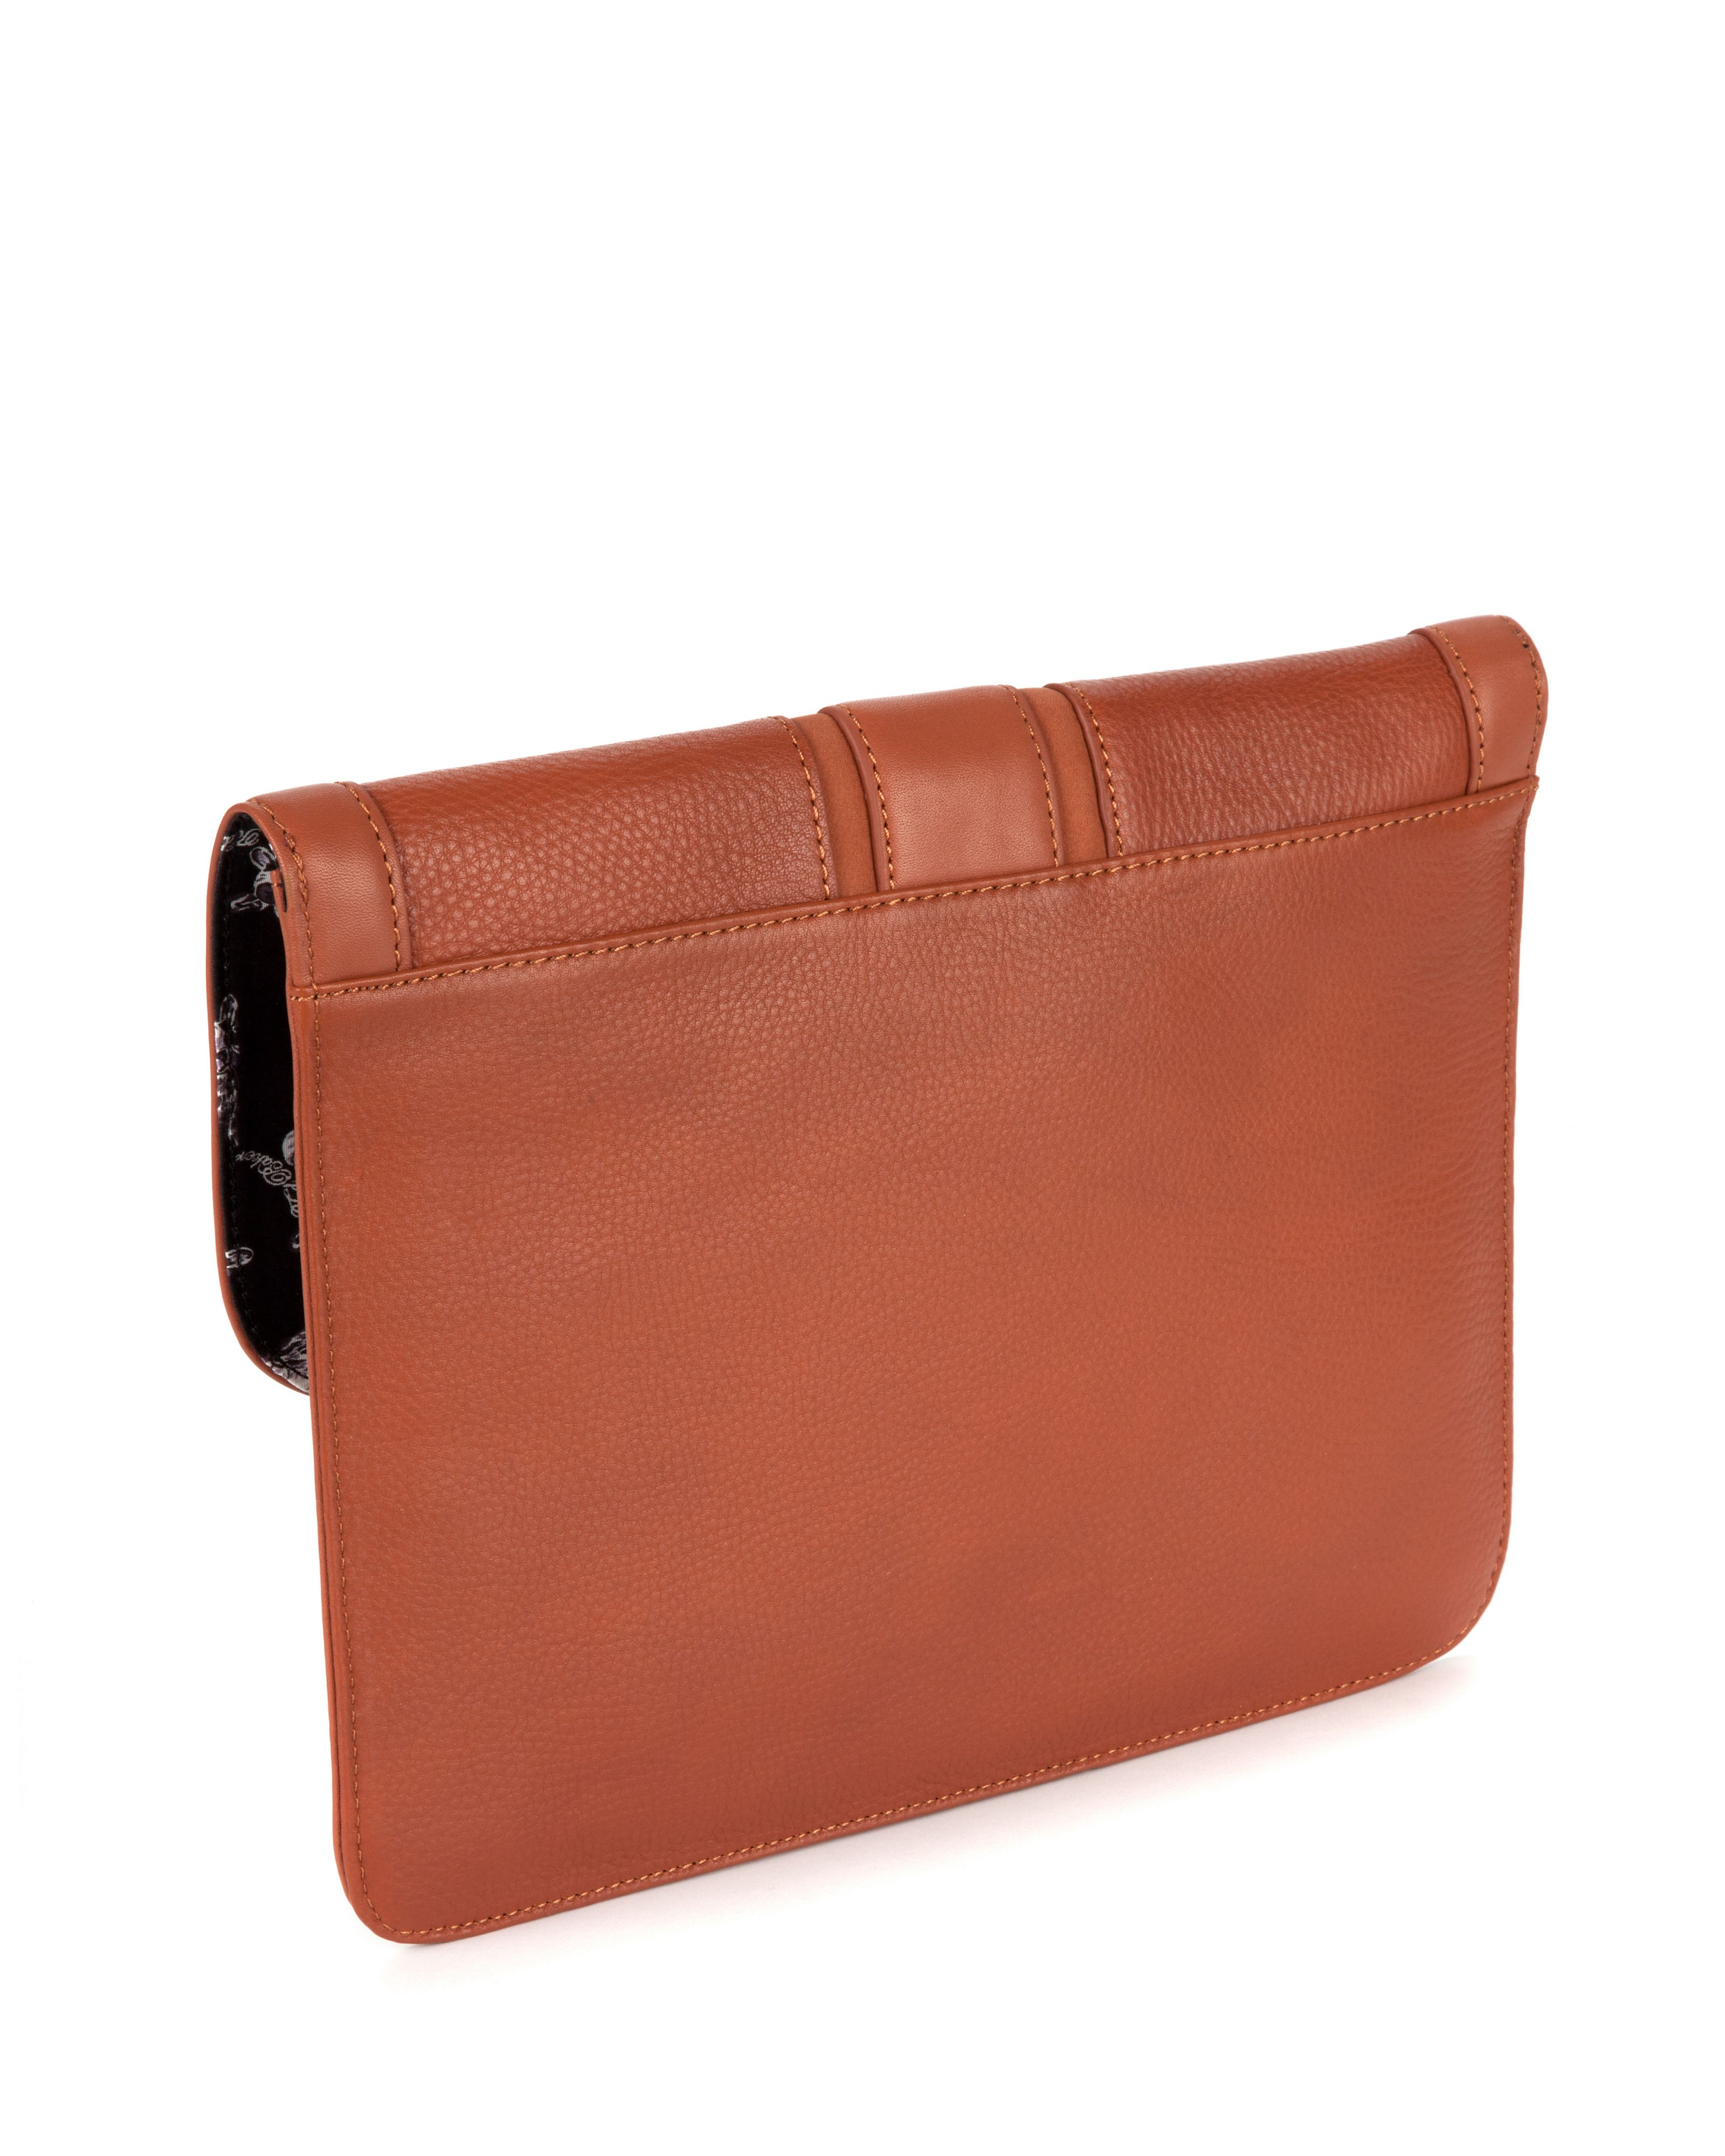 Reechie t keeper tablet case